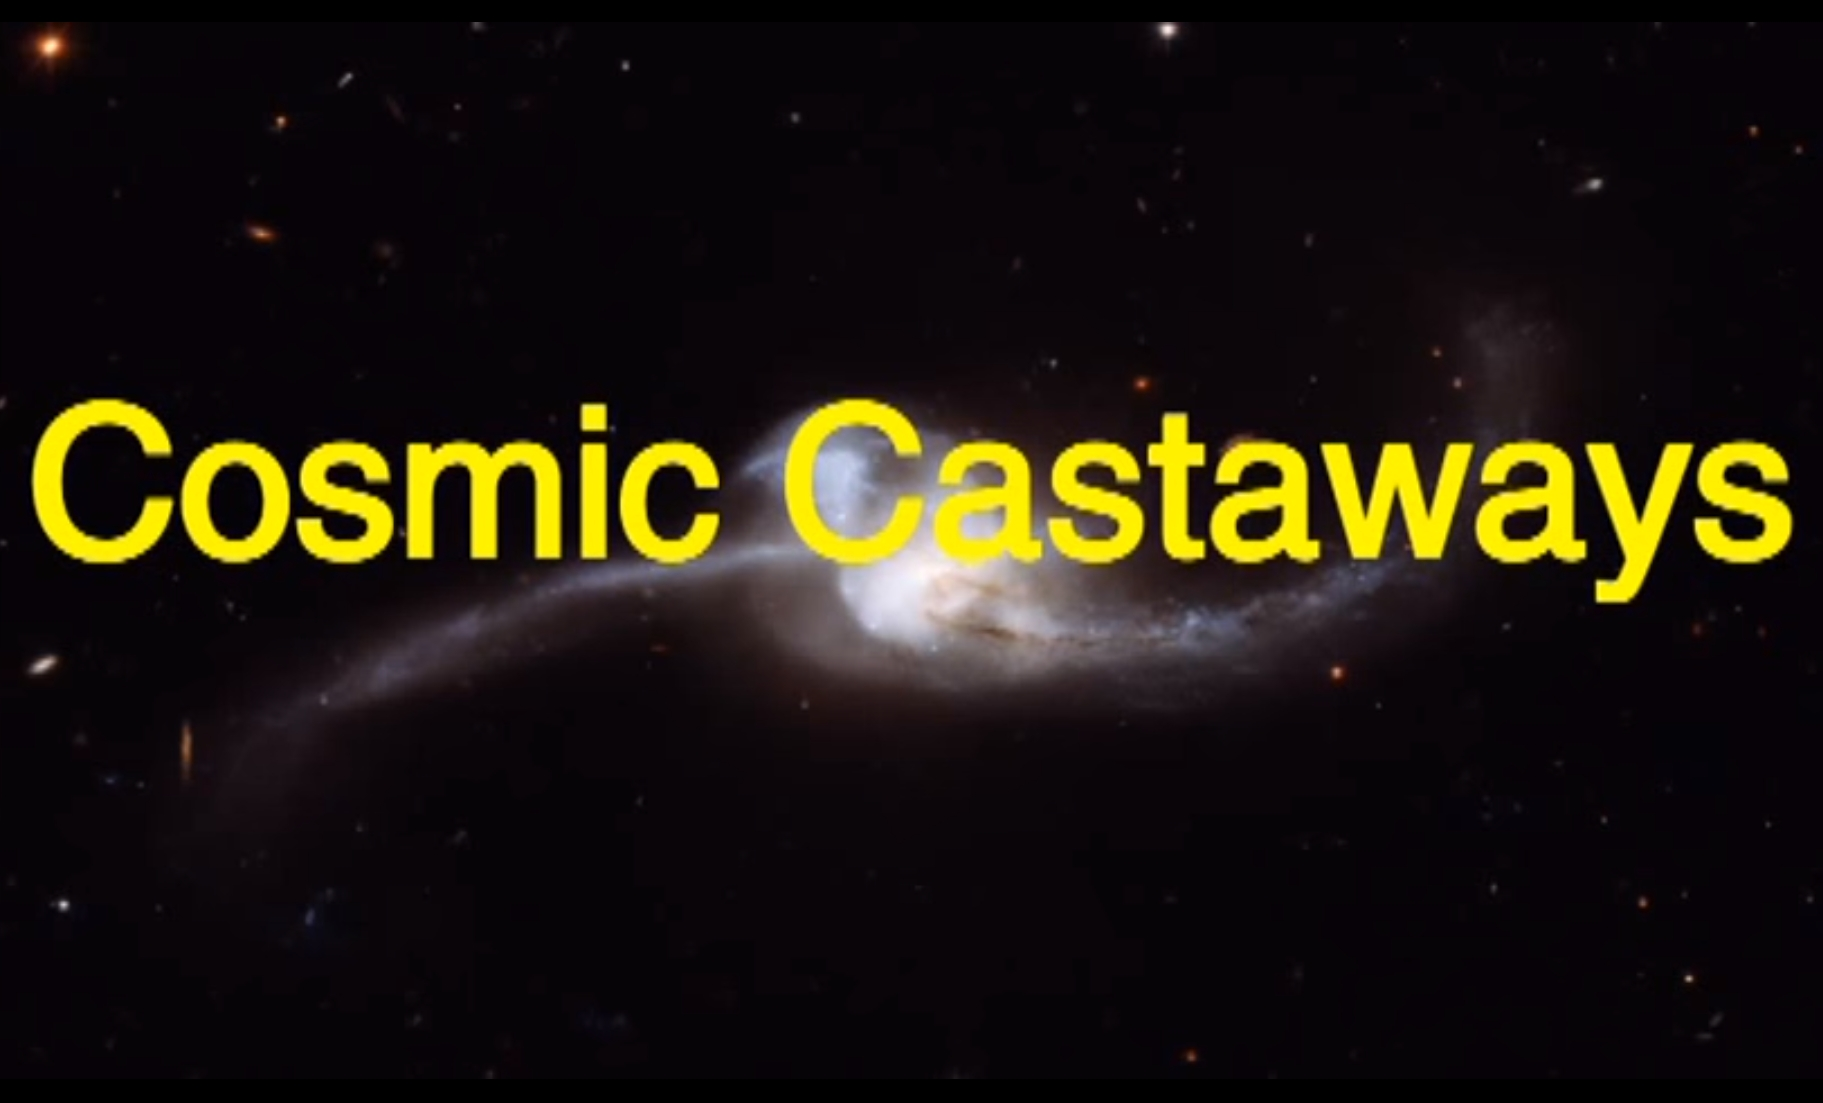 Cosmic Castaways